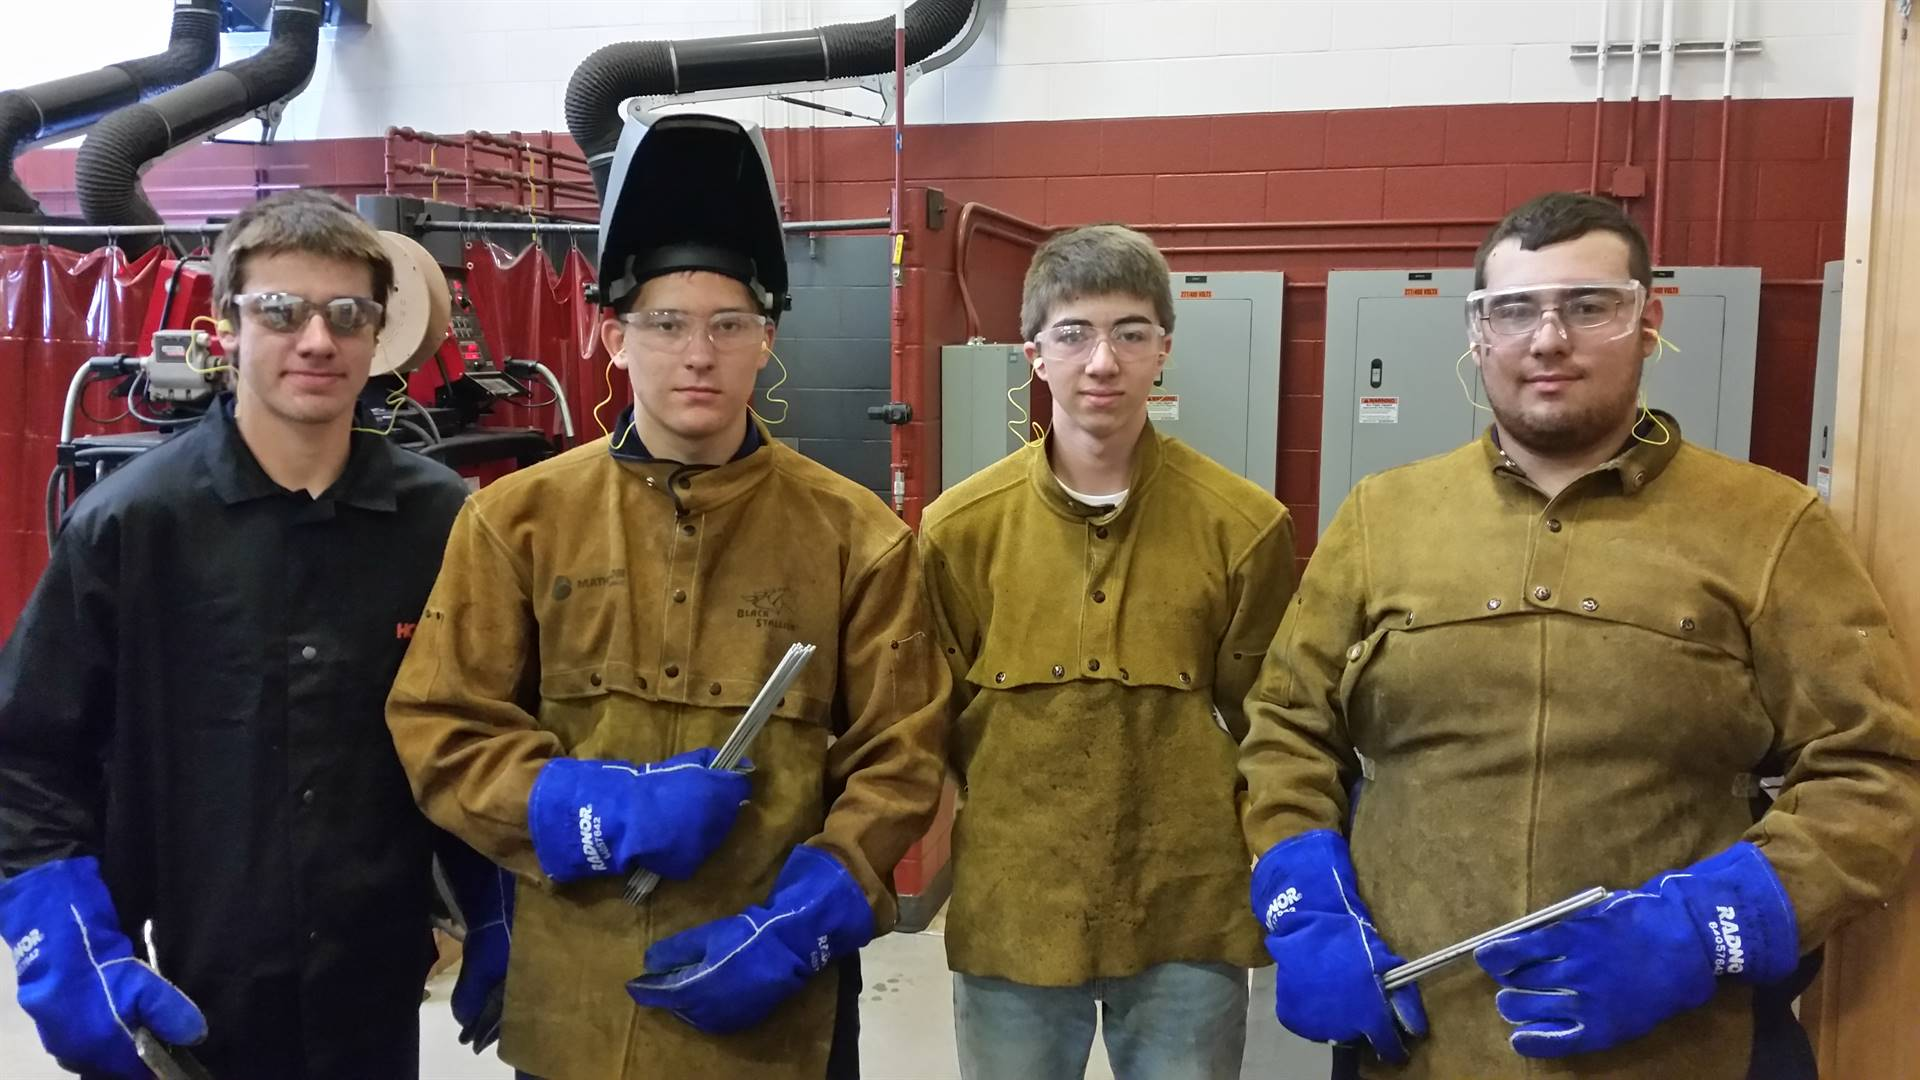 Four male Welding students in protective leather jackets and gloves